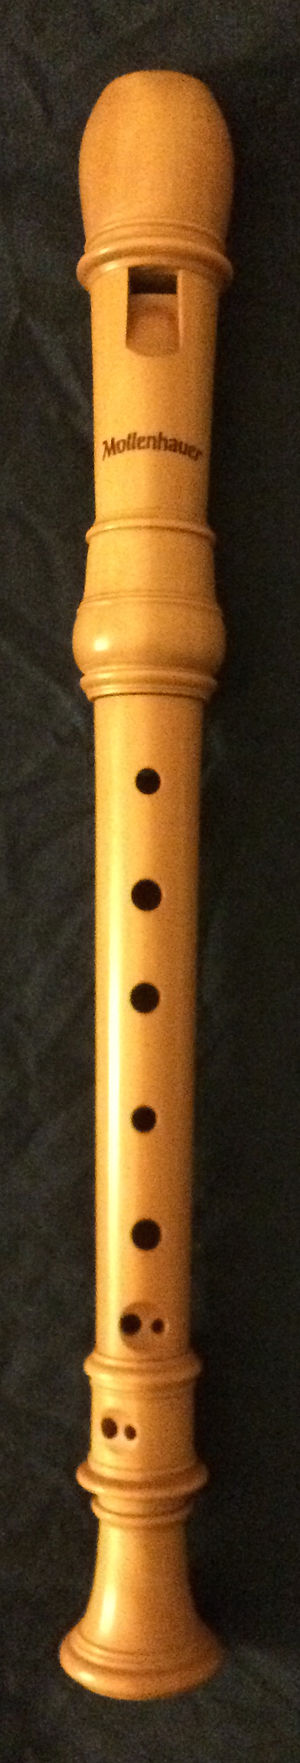 "Soprano recorder - A three-part soprano recorder in castello or zapatero ""boxwood""."